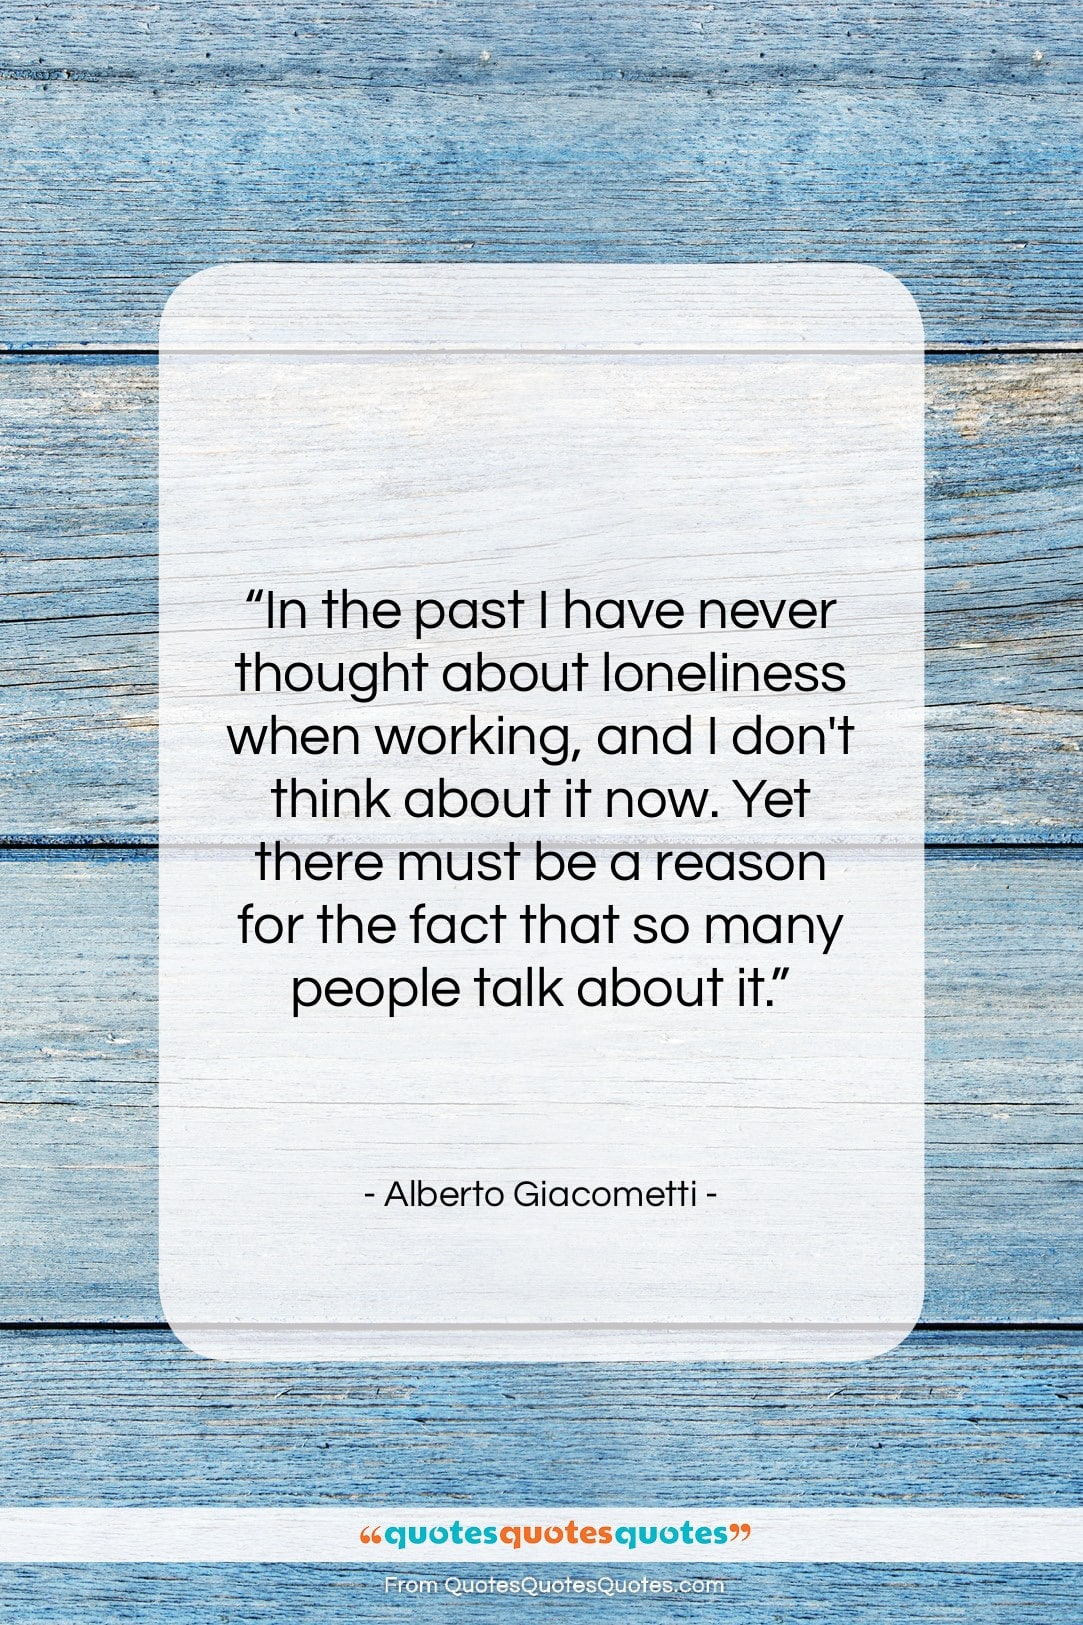 """Alberto Giacometti quote: """"In the past I have never thought…""""- at QuotesQuotesQuotes.com"""